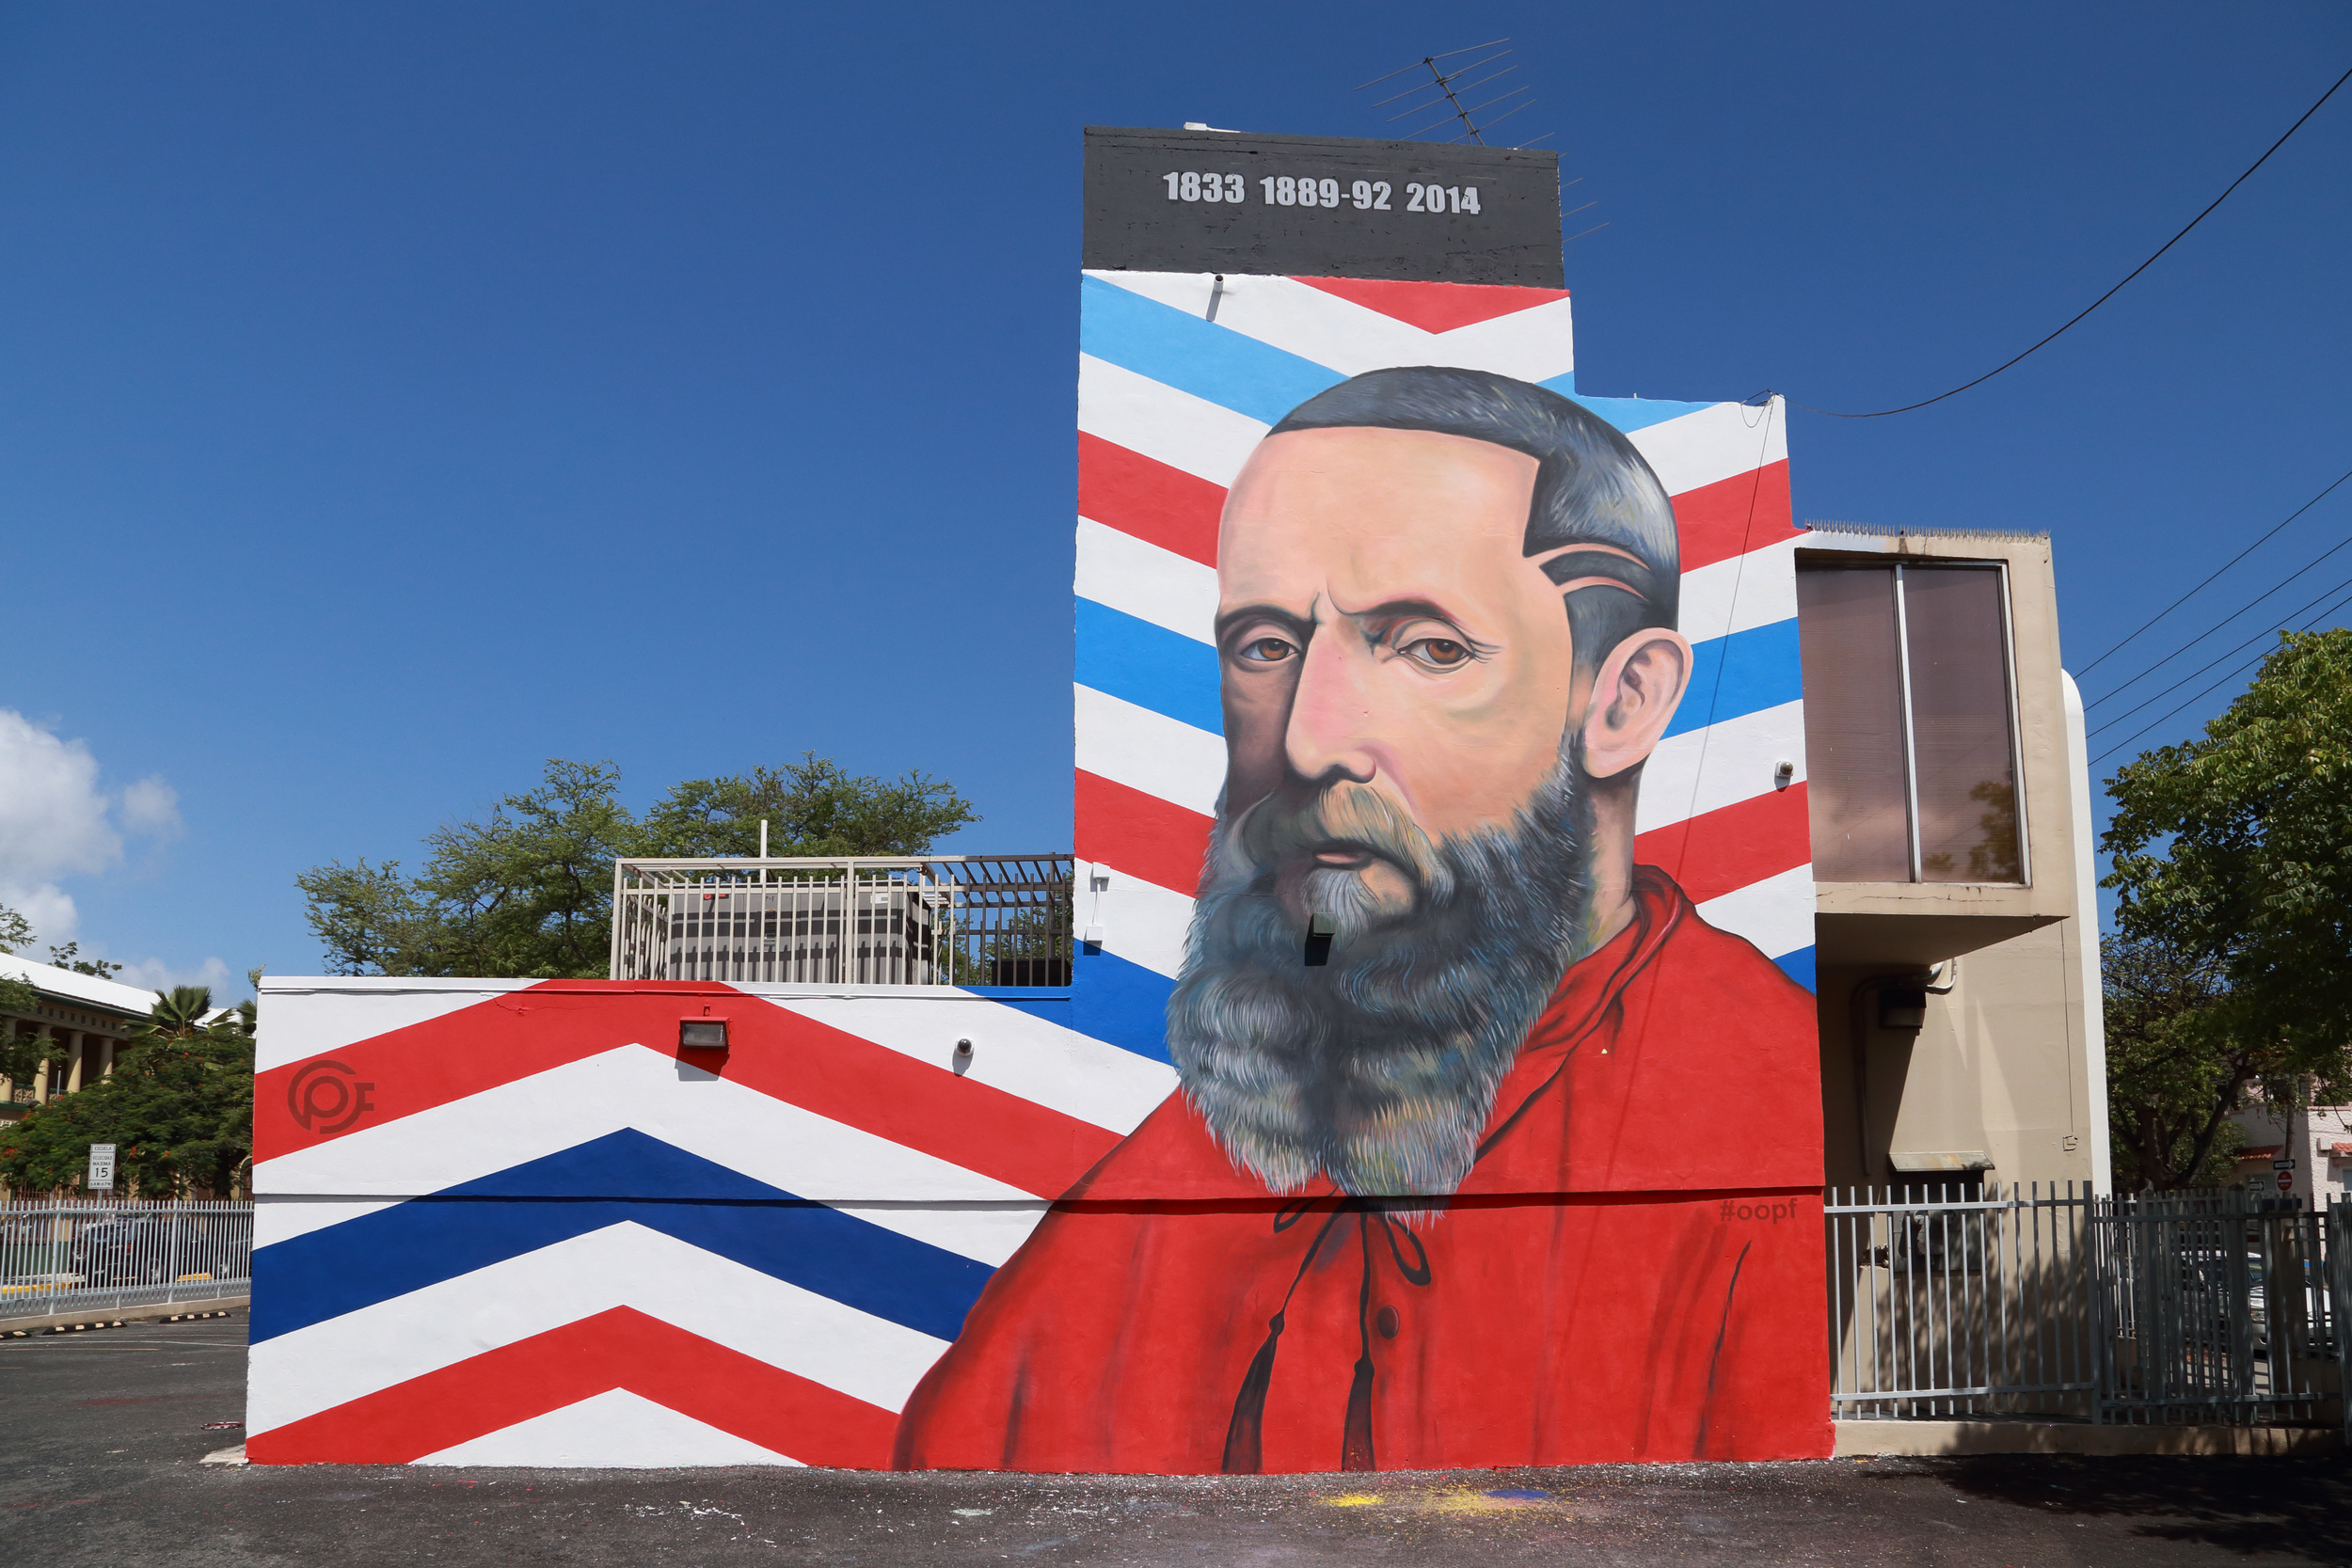 Omar Obdulio's mural shows a contemporary portrait of Francisco Oller, a famous Puerto Rican painter who died in 1917